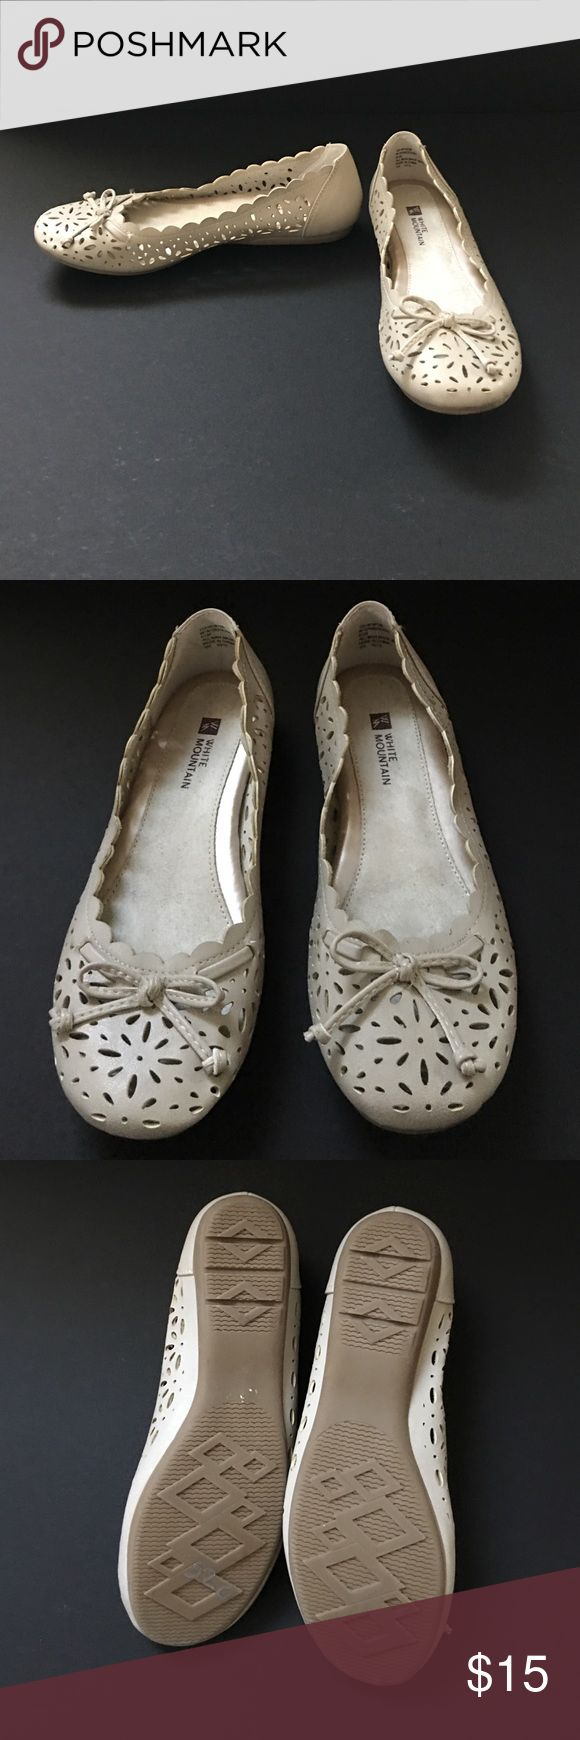 NWOT White Mountain Man Made Flats. Very cute Flat. Size 6.5, but it run small fit like a 6. New, new worn. White Mountain Shoes Flats & Loafers